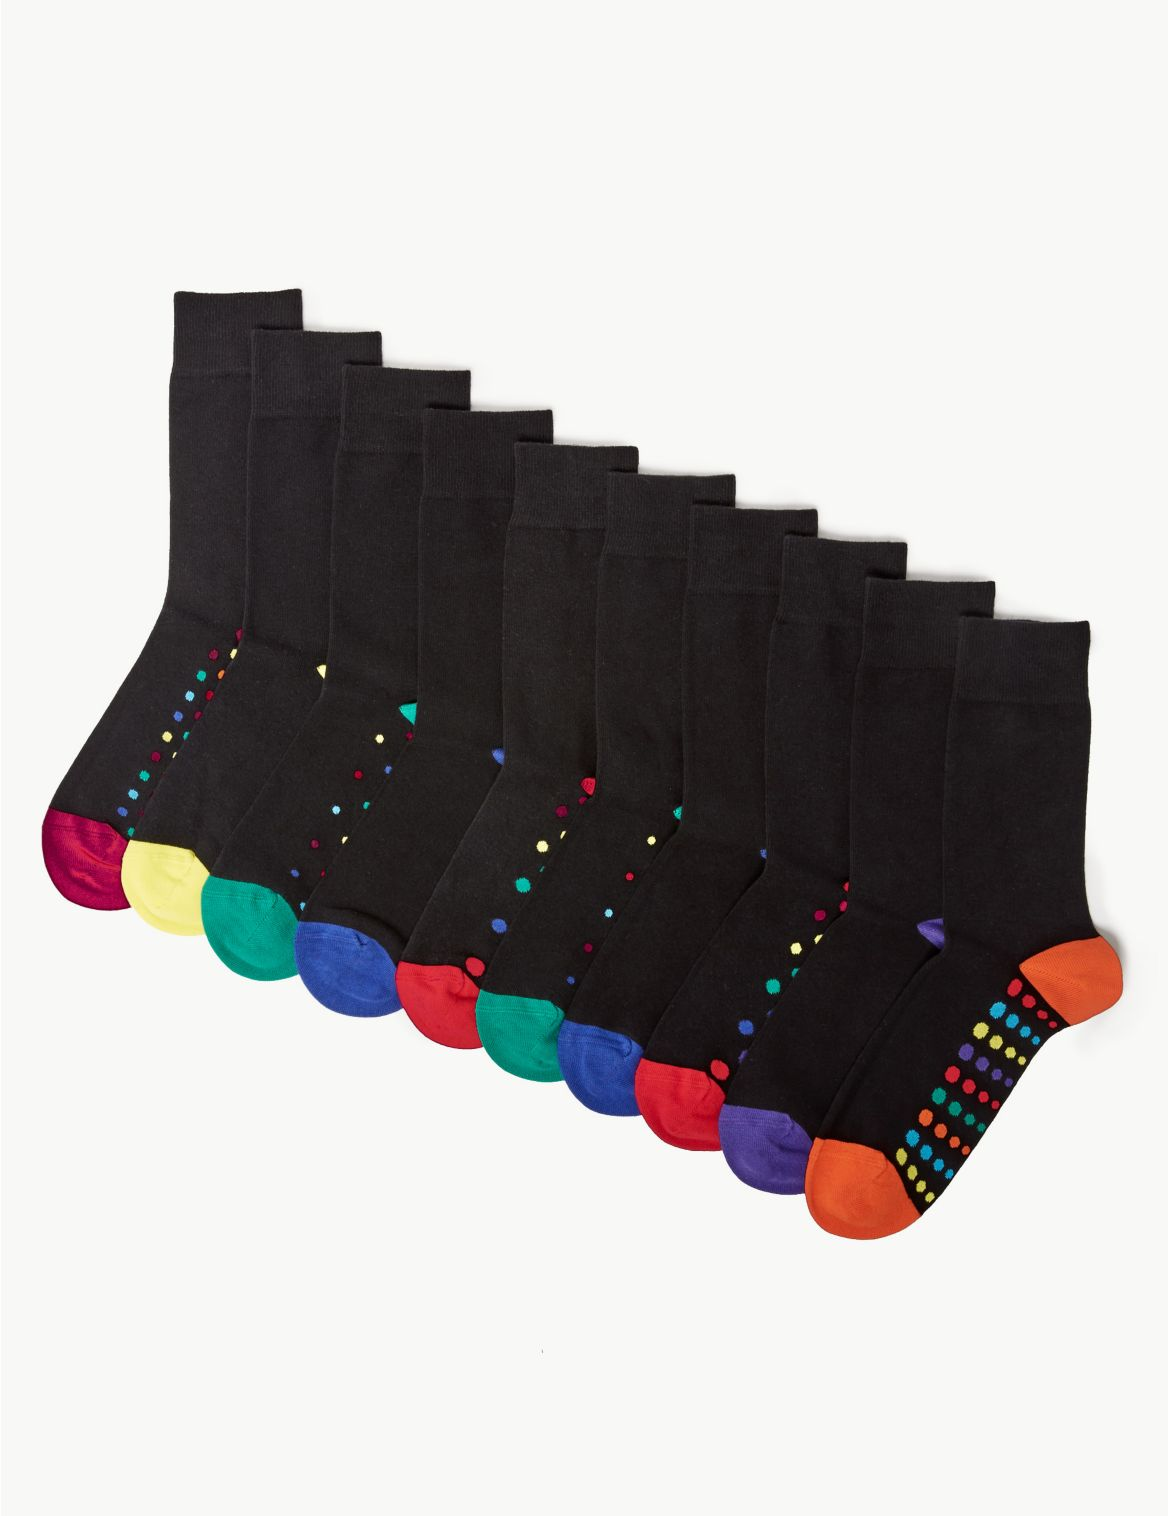 10 Pack Cotton Cool & Fresh™ Spot Print Socks brights